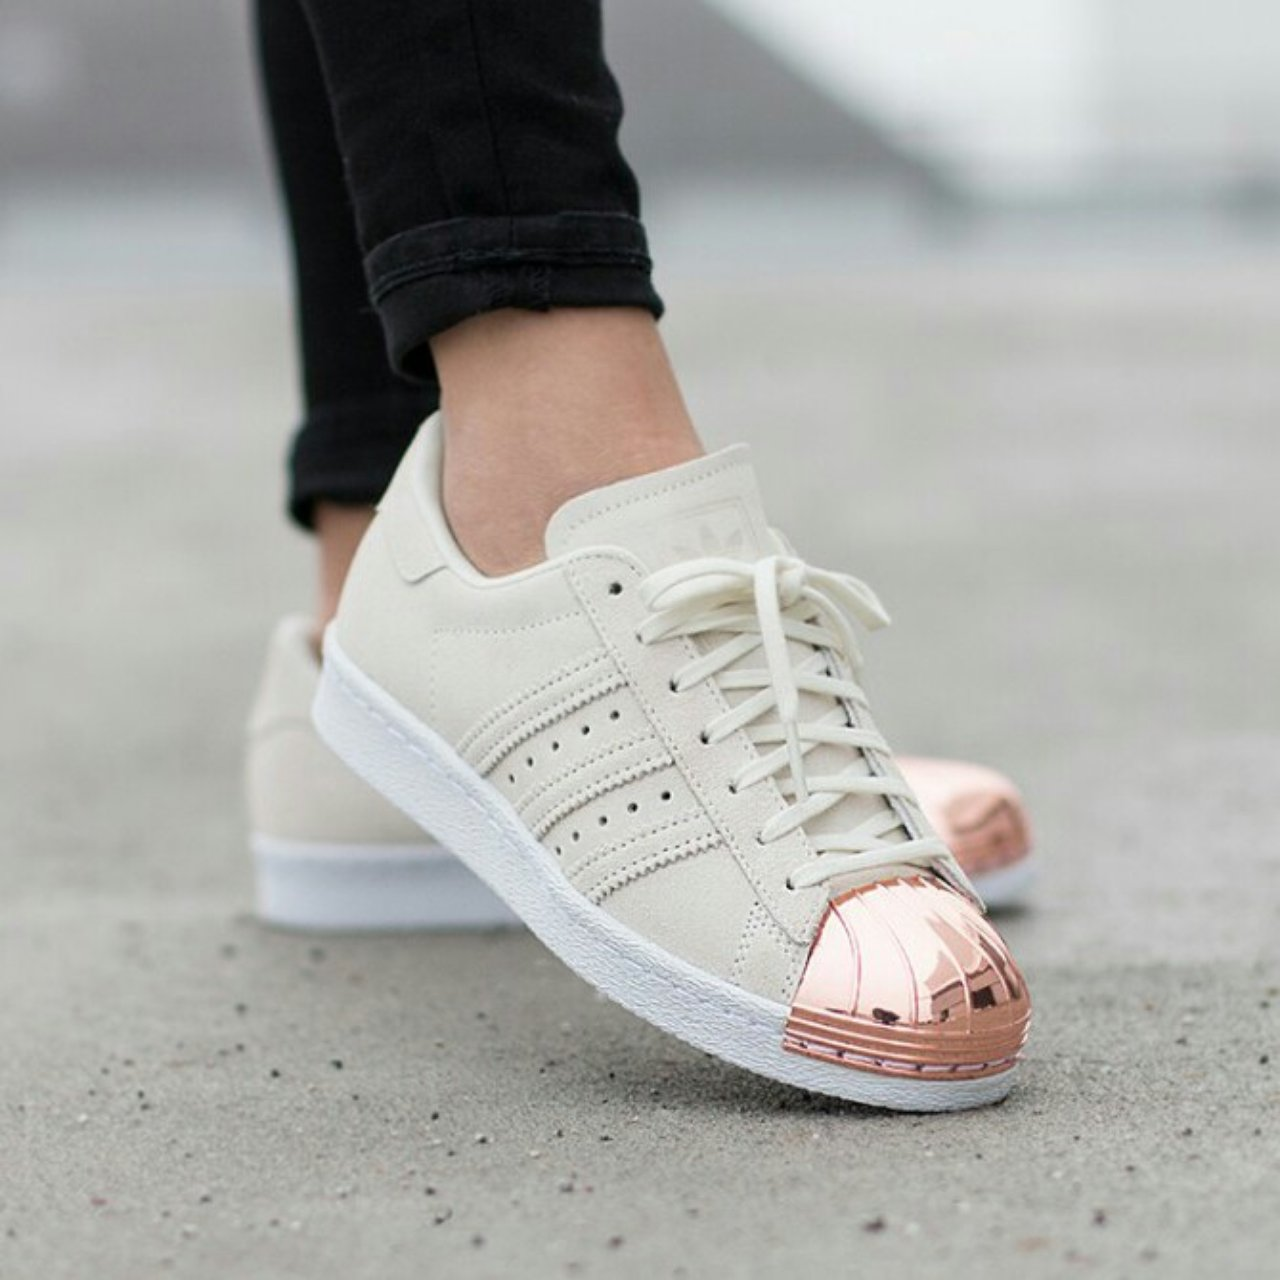 Adidas Superstar 80's Metal Toe Off White